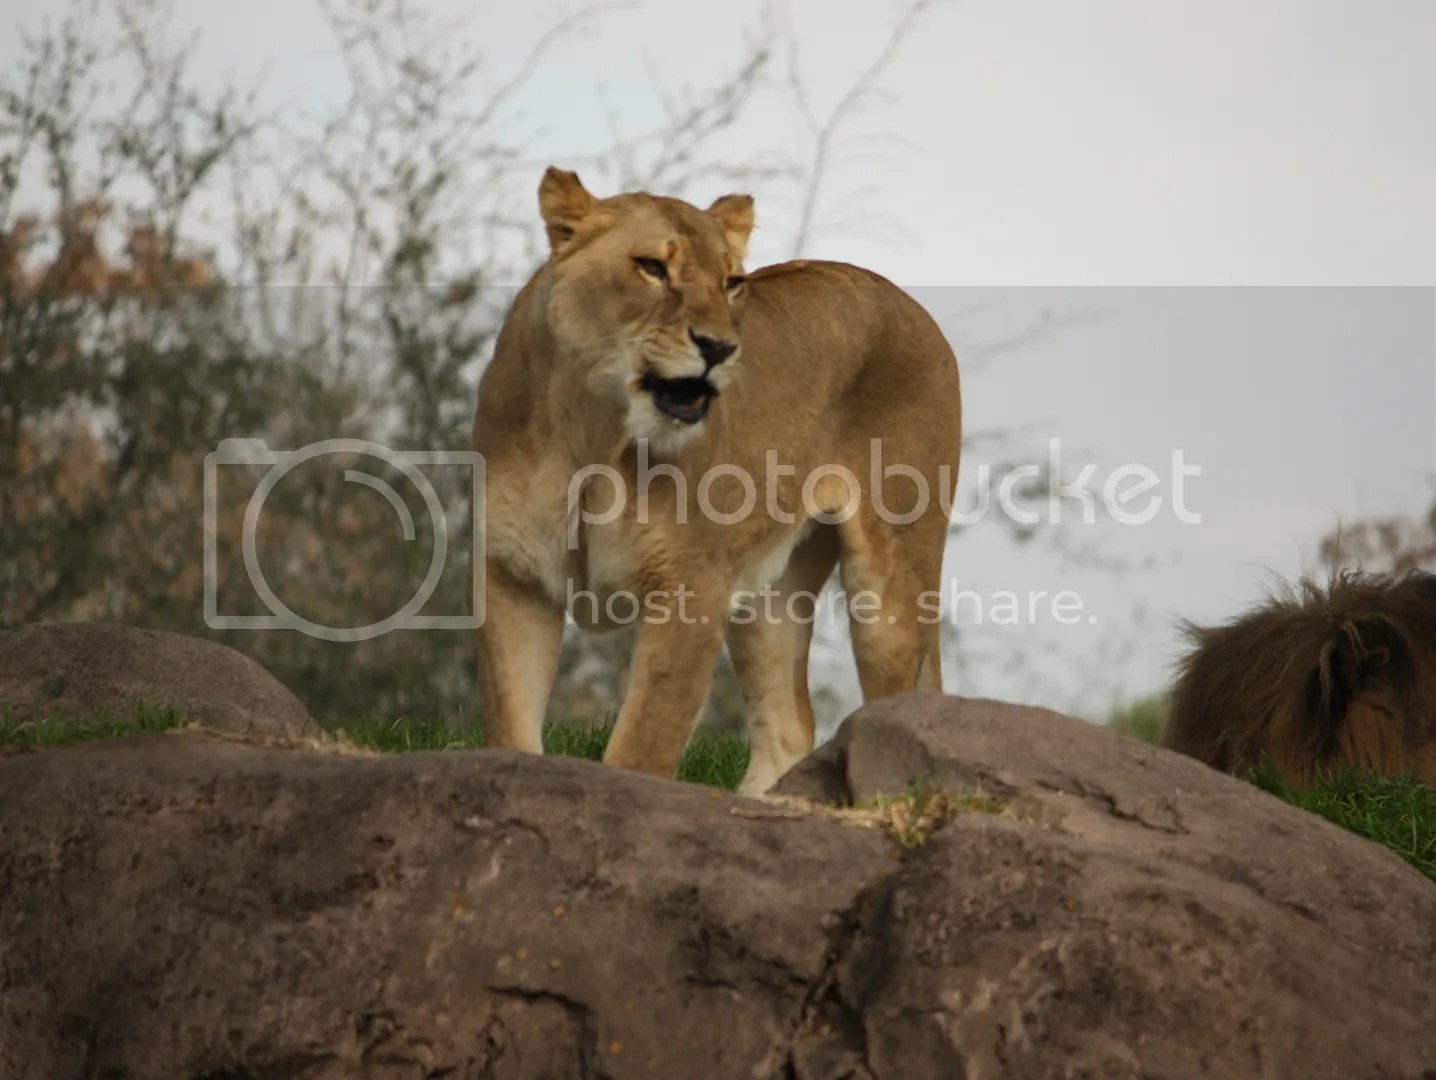 lioness photo: Lioness animalkingdom149.jpg